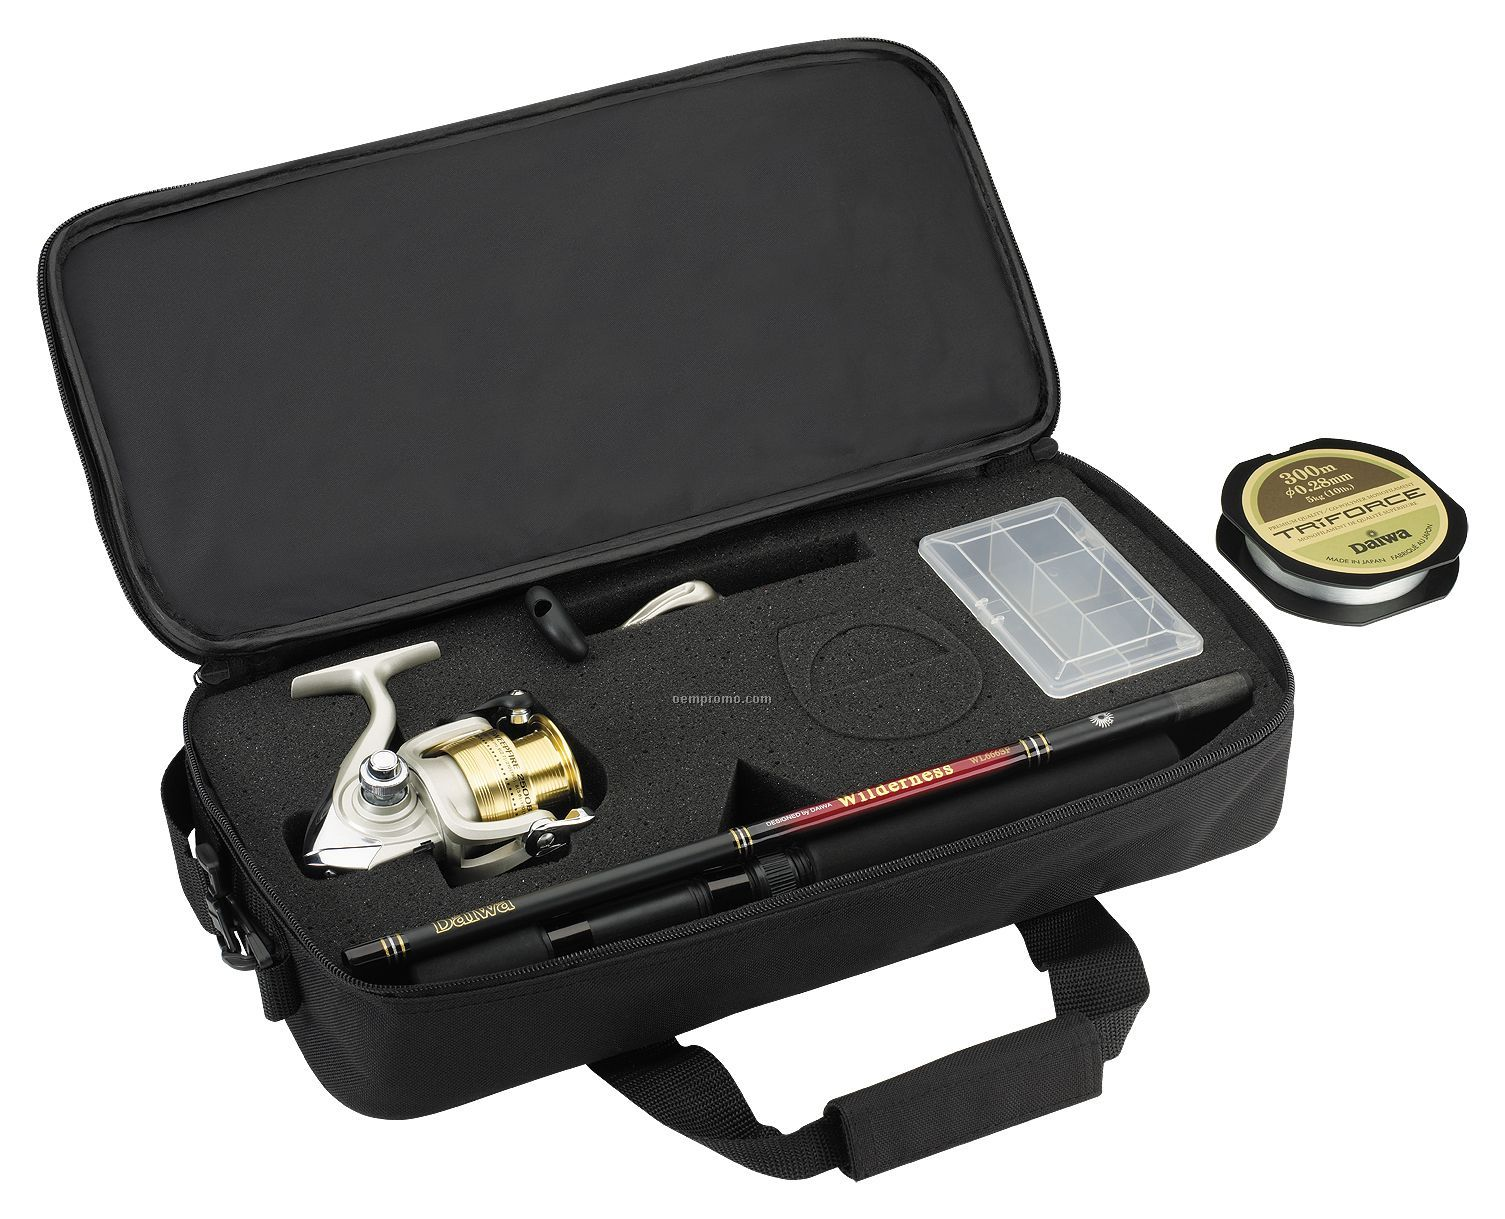 Daiwa Sweepfire Executive Rod & Reel Travel Pack In Soft Case